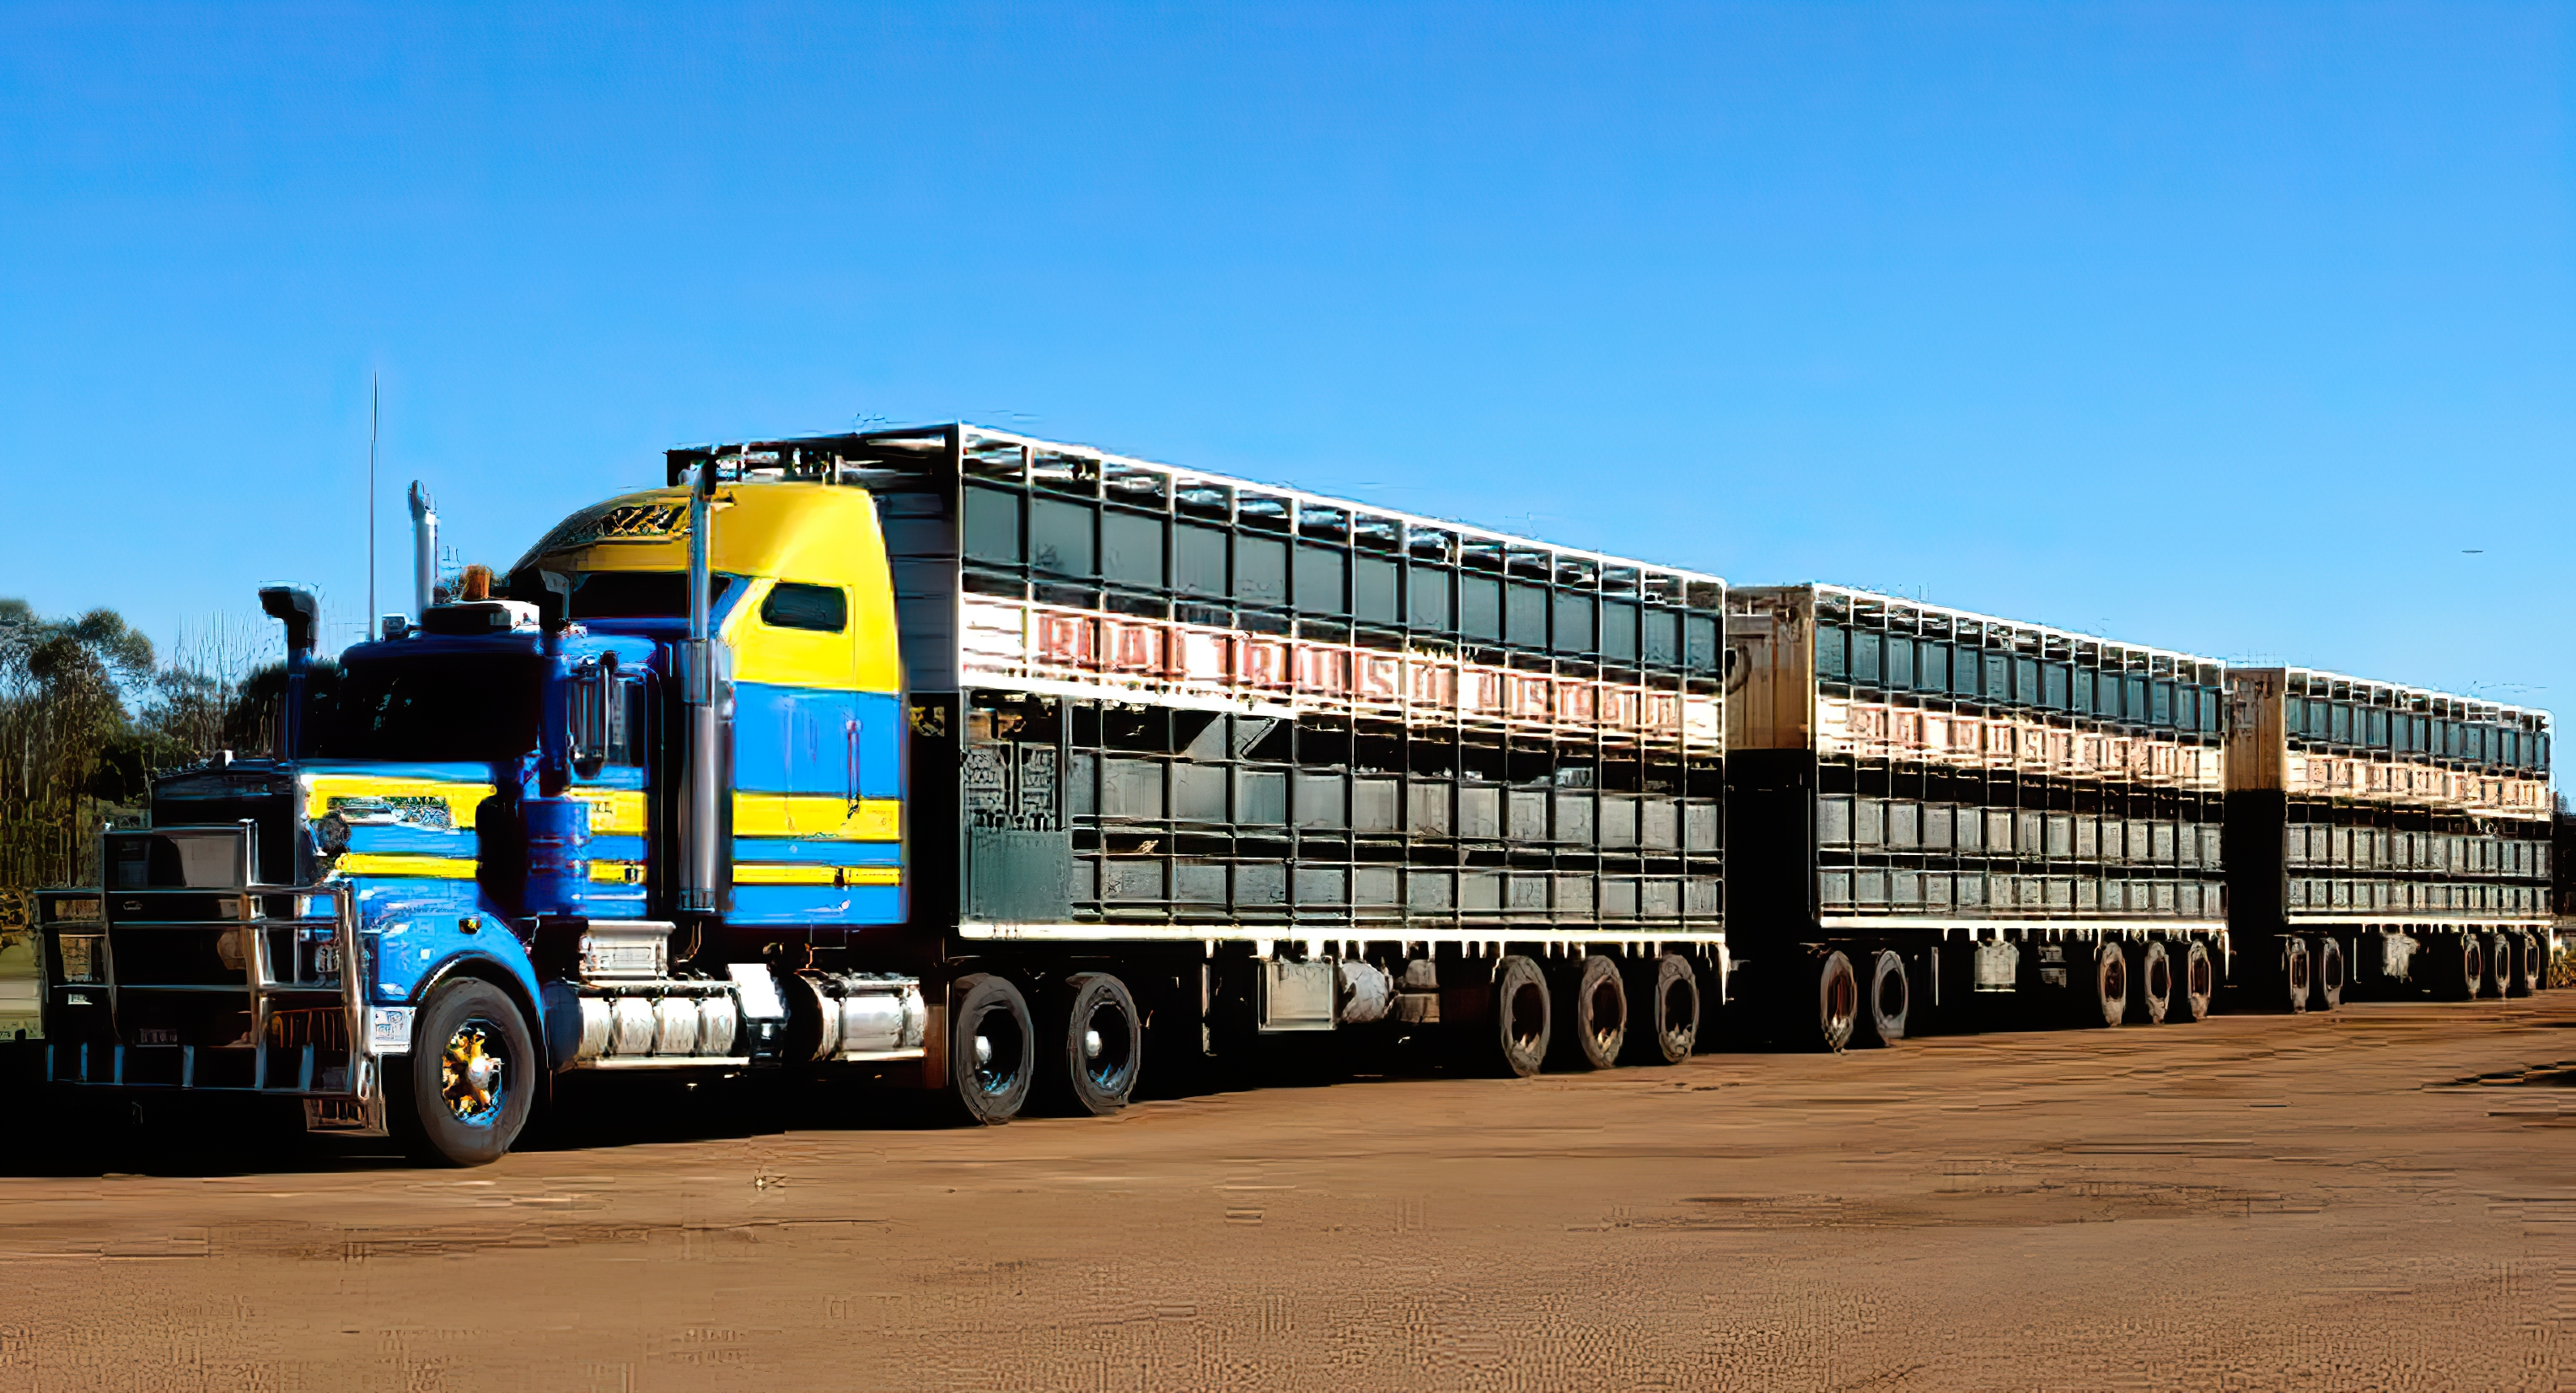 Fabrication ware tractor trailers and semitrailers